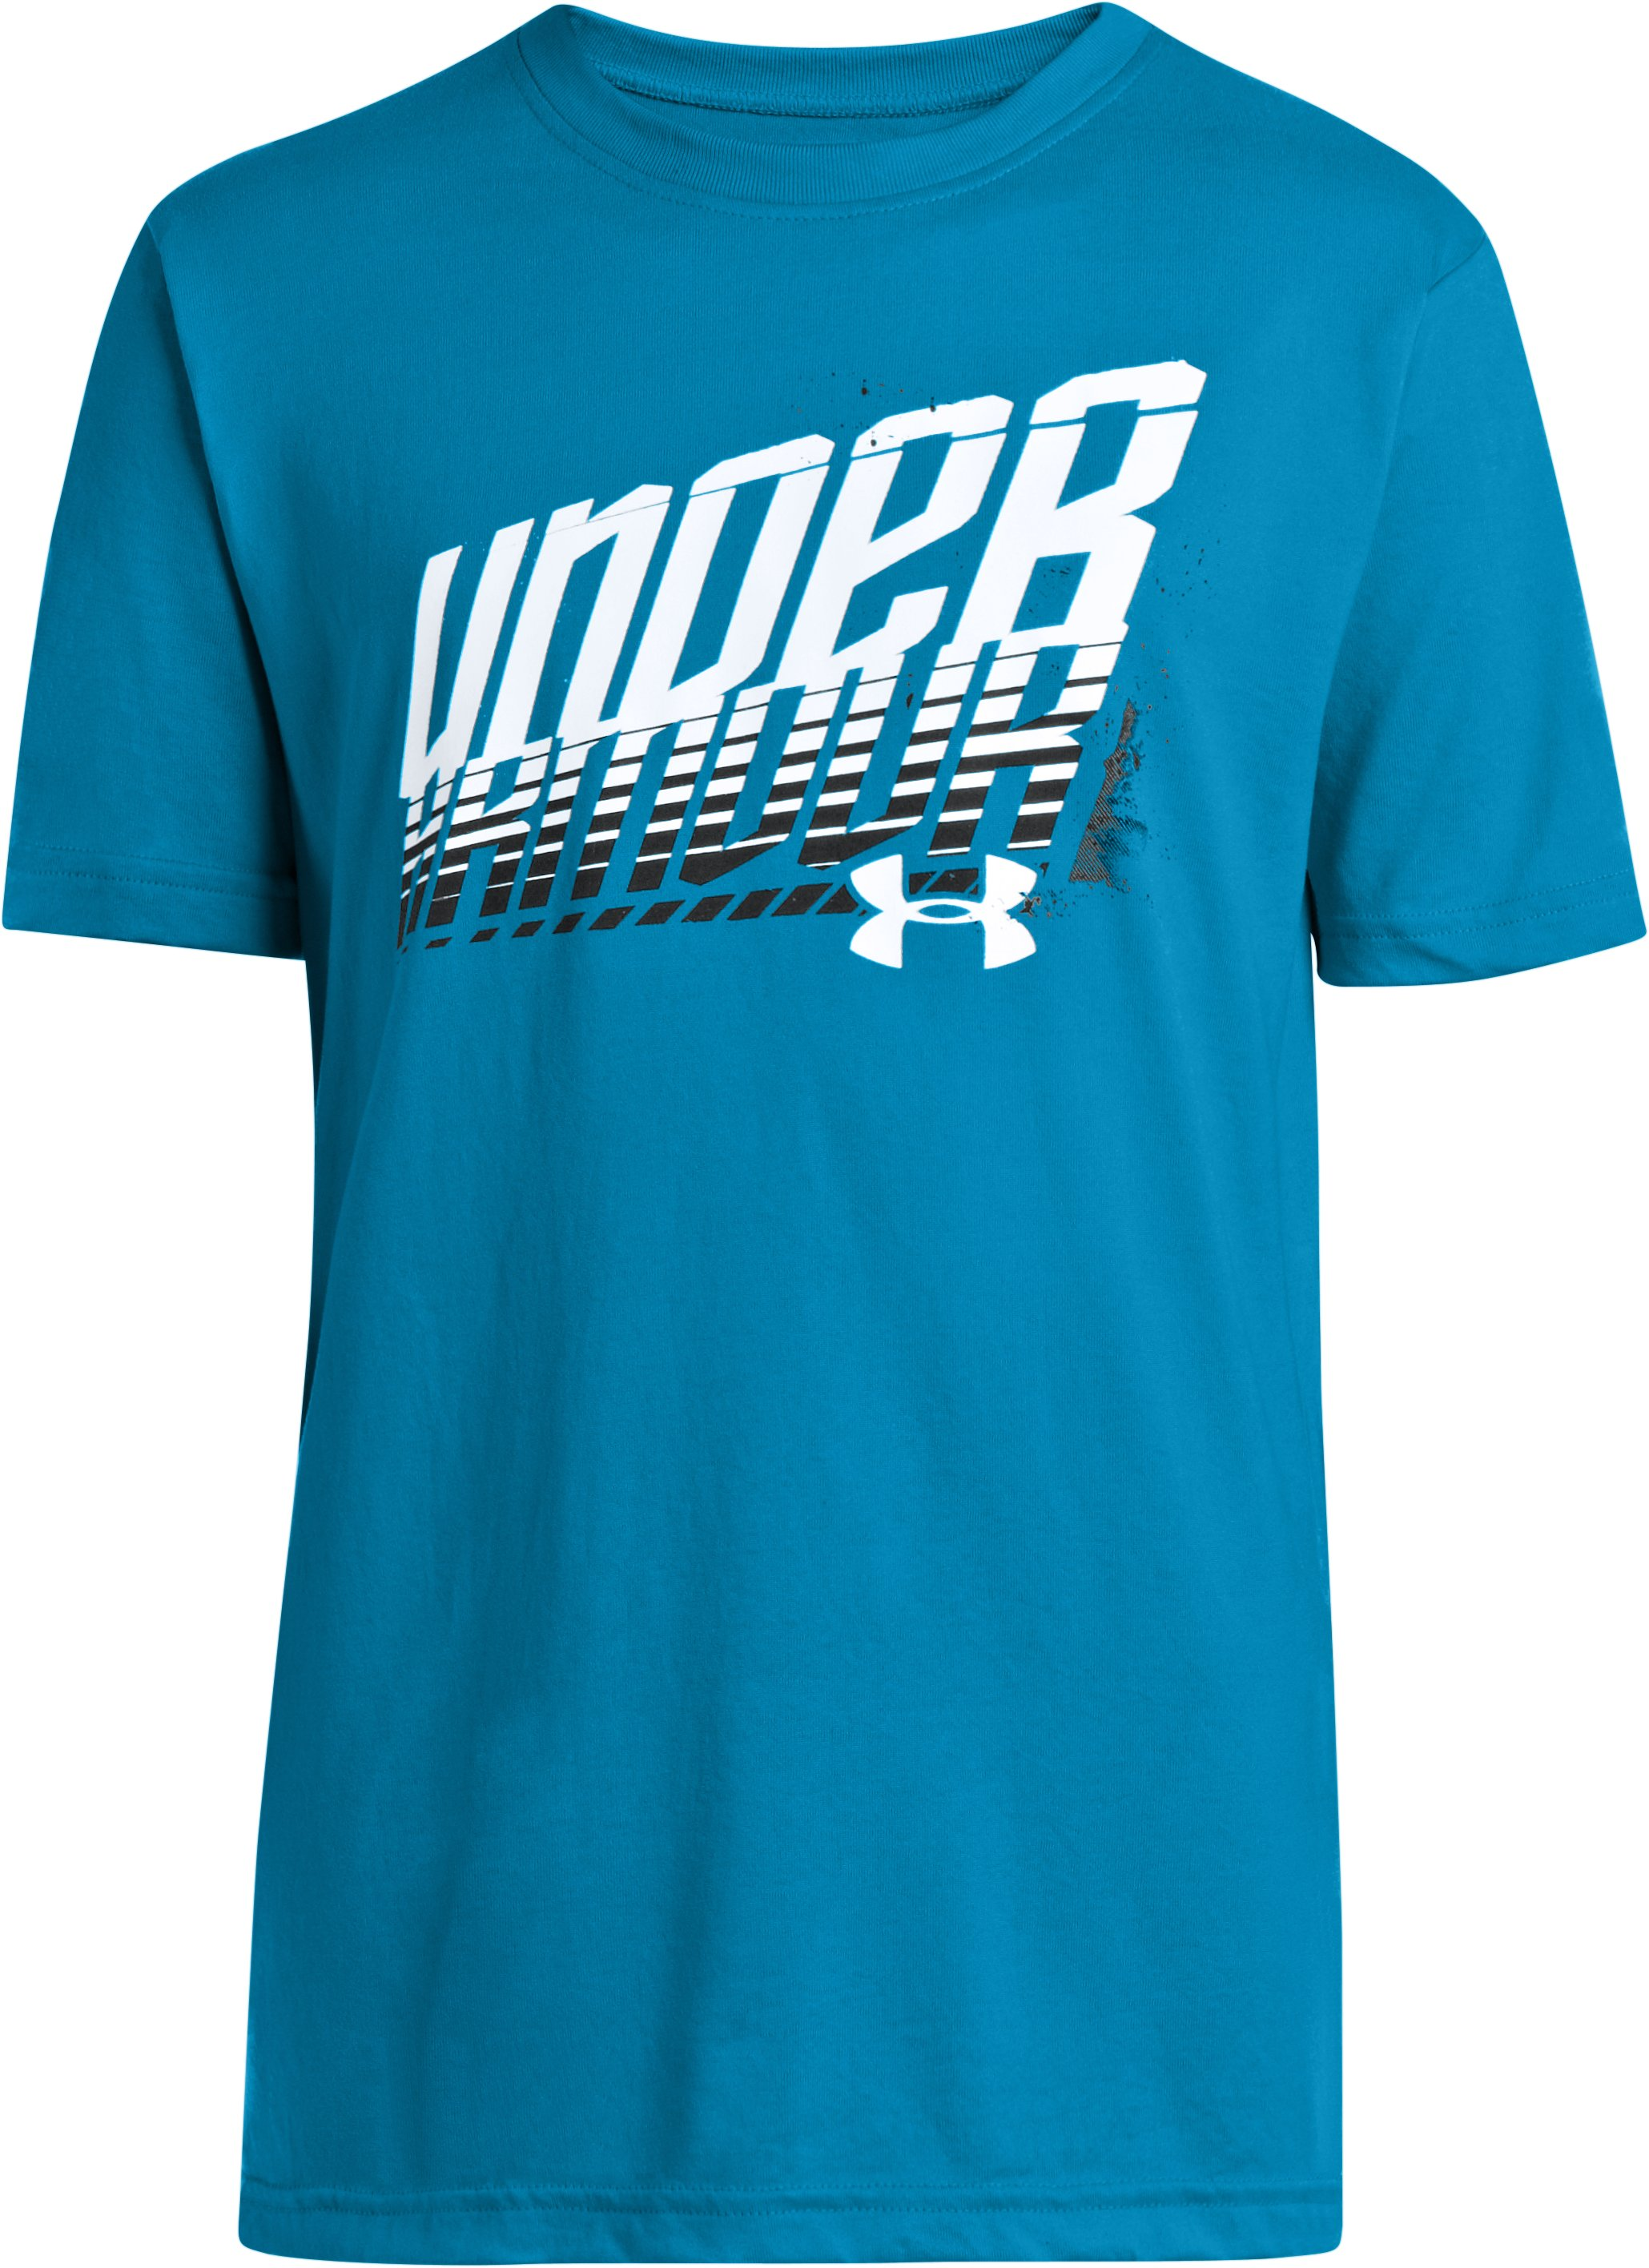 Boys' UA Future Fast T-Shirt, PIRATE BLUE, zoomed image